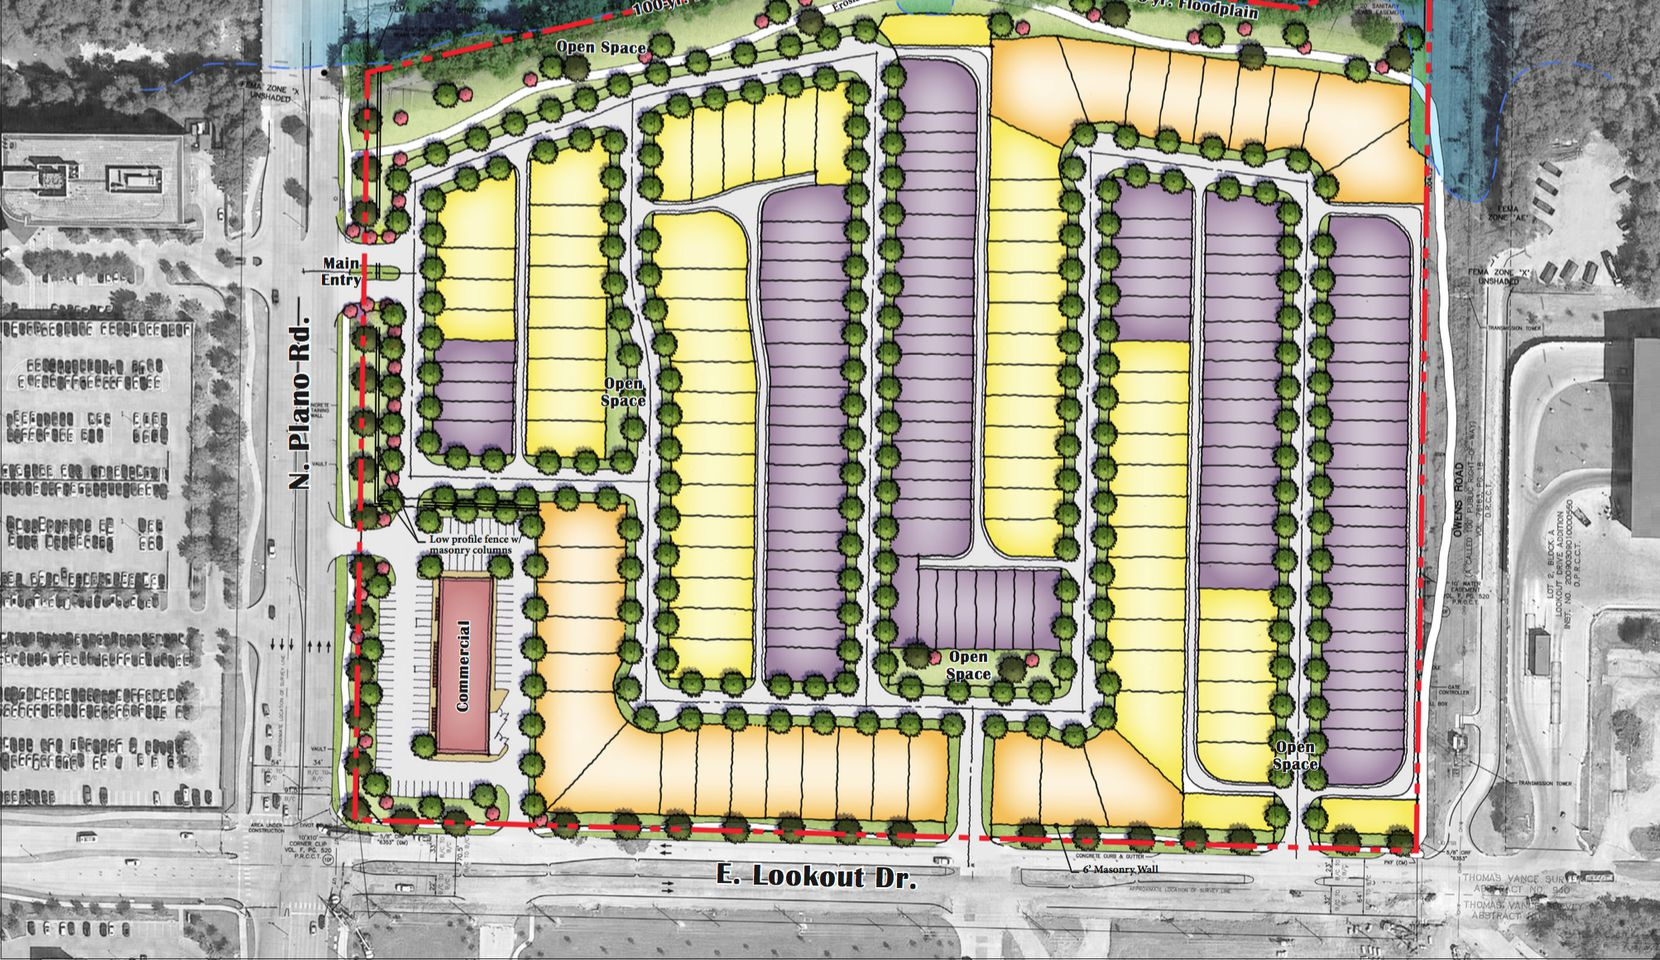 Arcadia Realty wants to build an almost 200-home community on the Plano Road property.